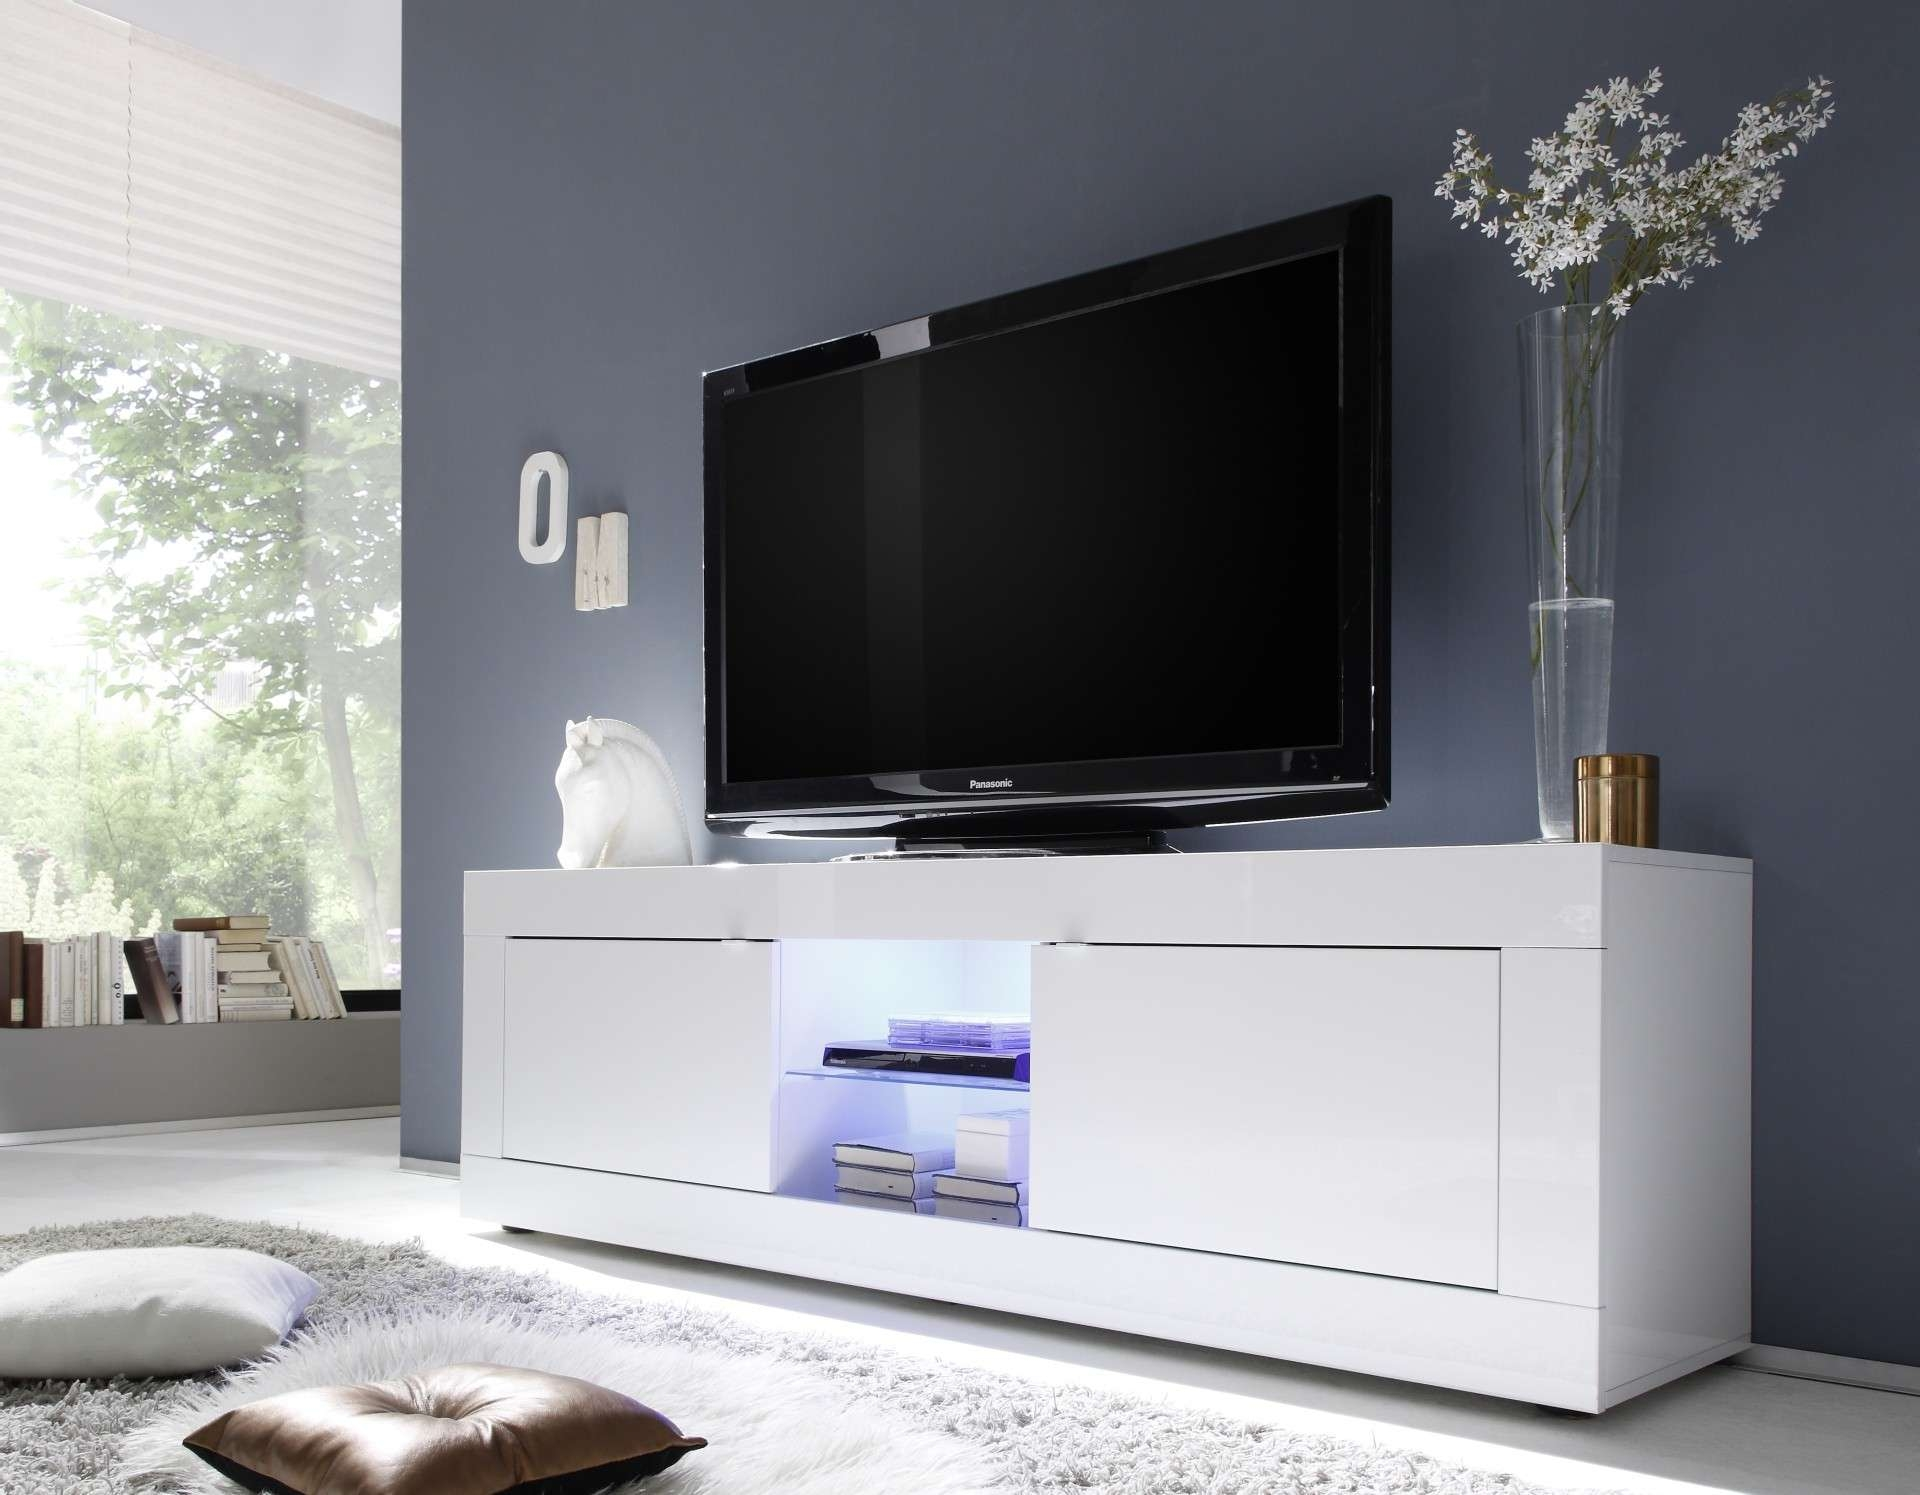 Dolcevita Ii Gloss Tv Stand – Tv Stands – Sena Home Furniture With Gloss White Tv Stands (View 5 of 15)